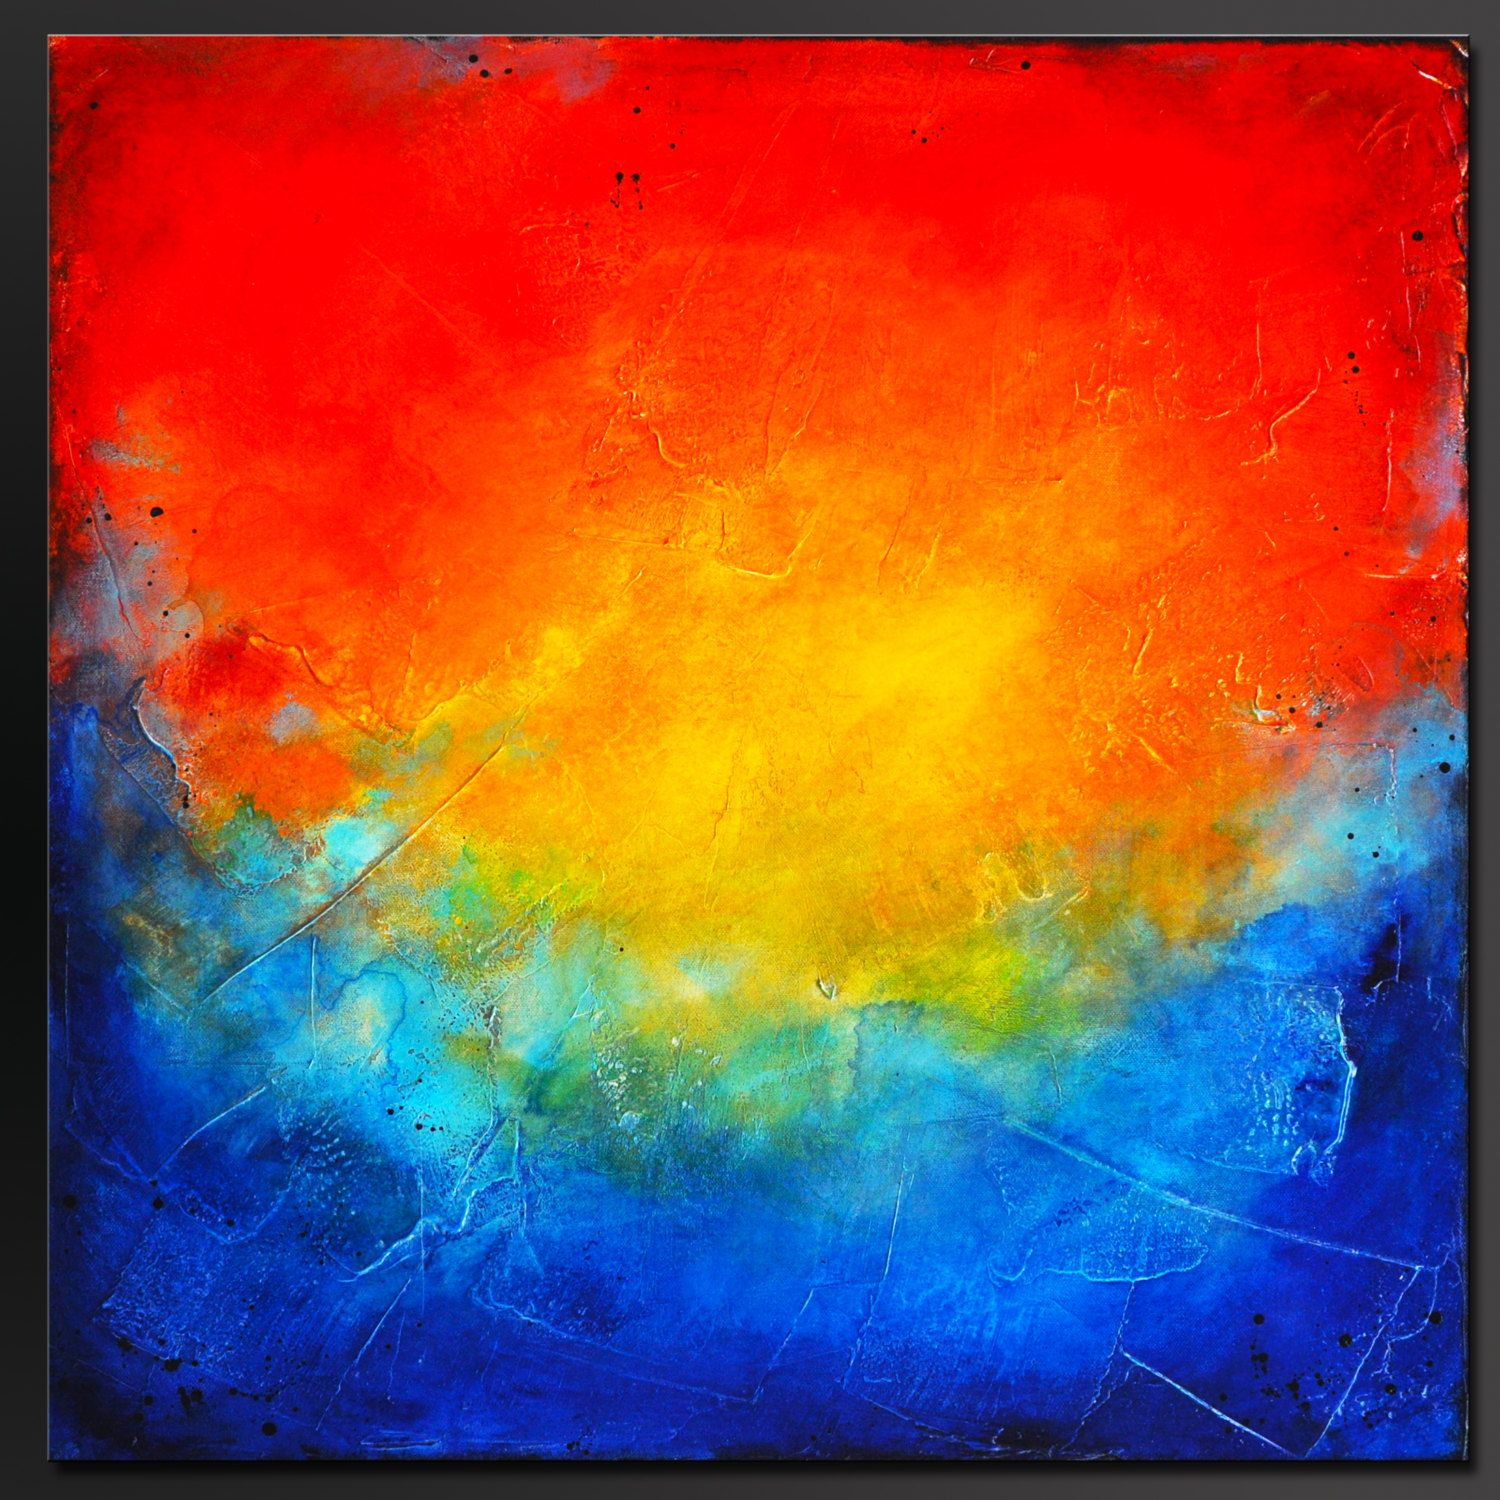 Illusion - 24 x 24 - Abstract Acrylic Painting - Contemporary Wall ...